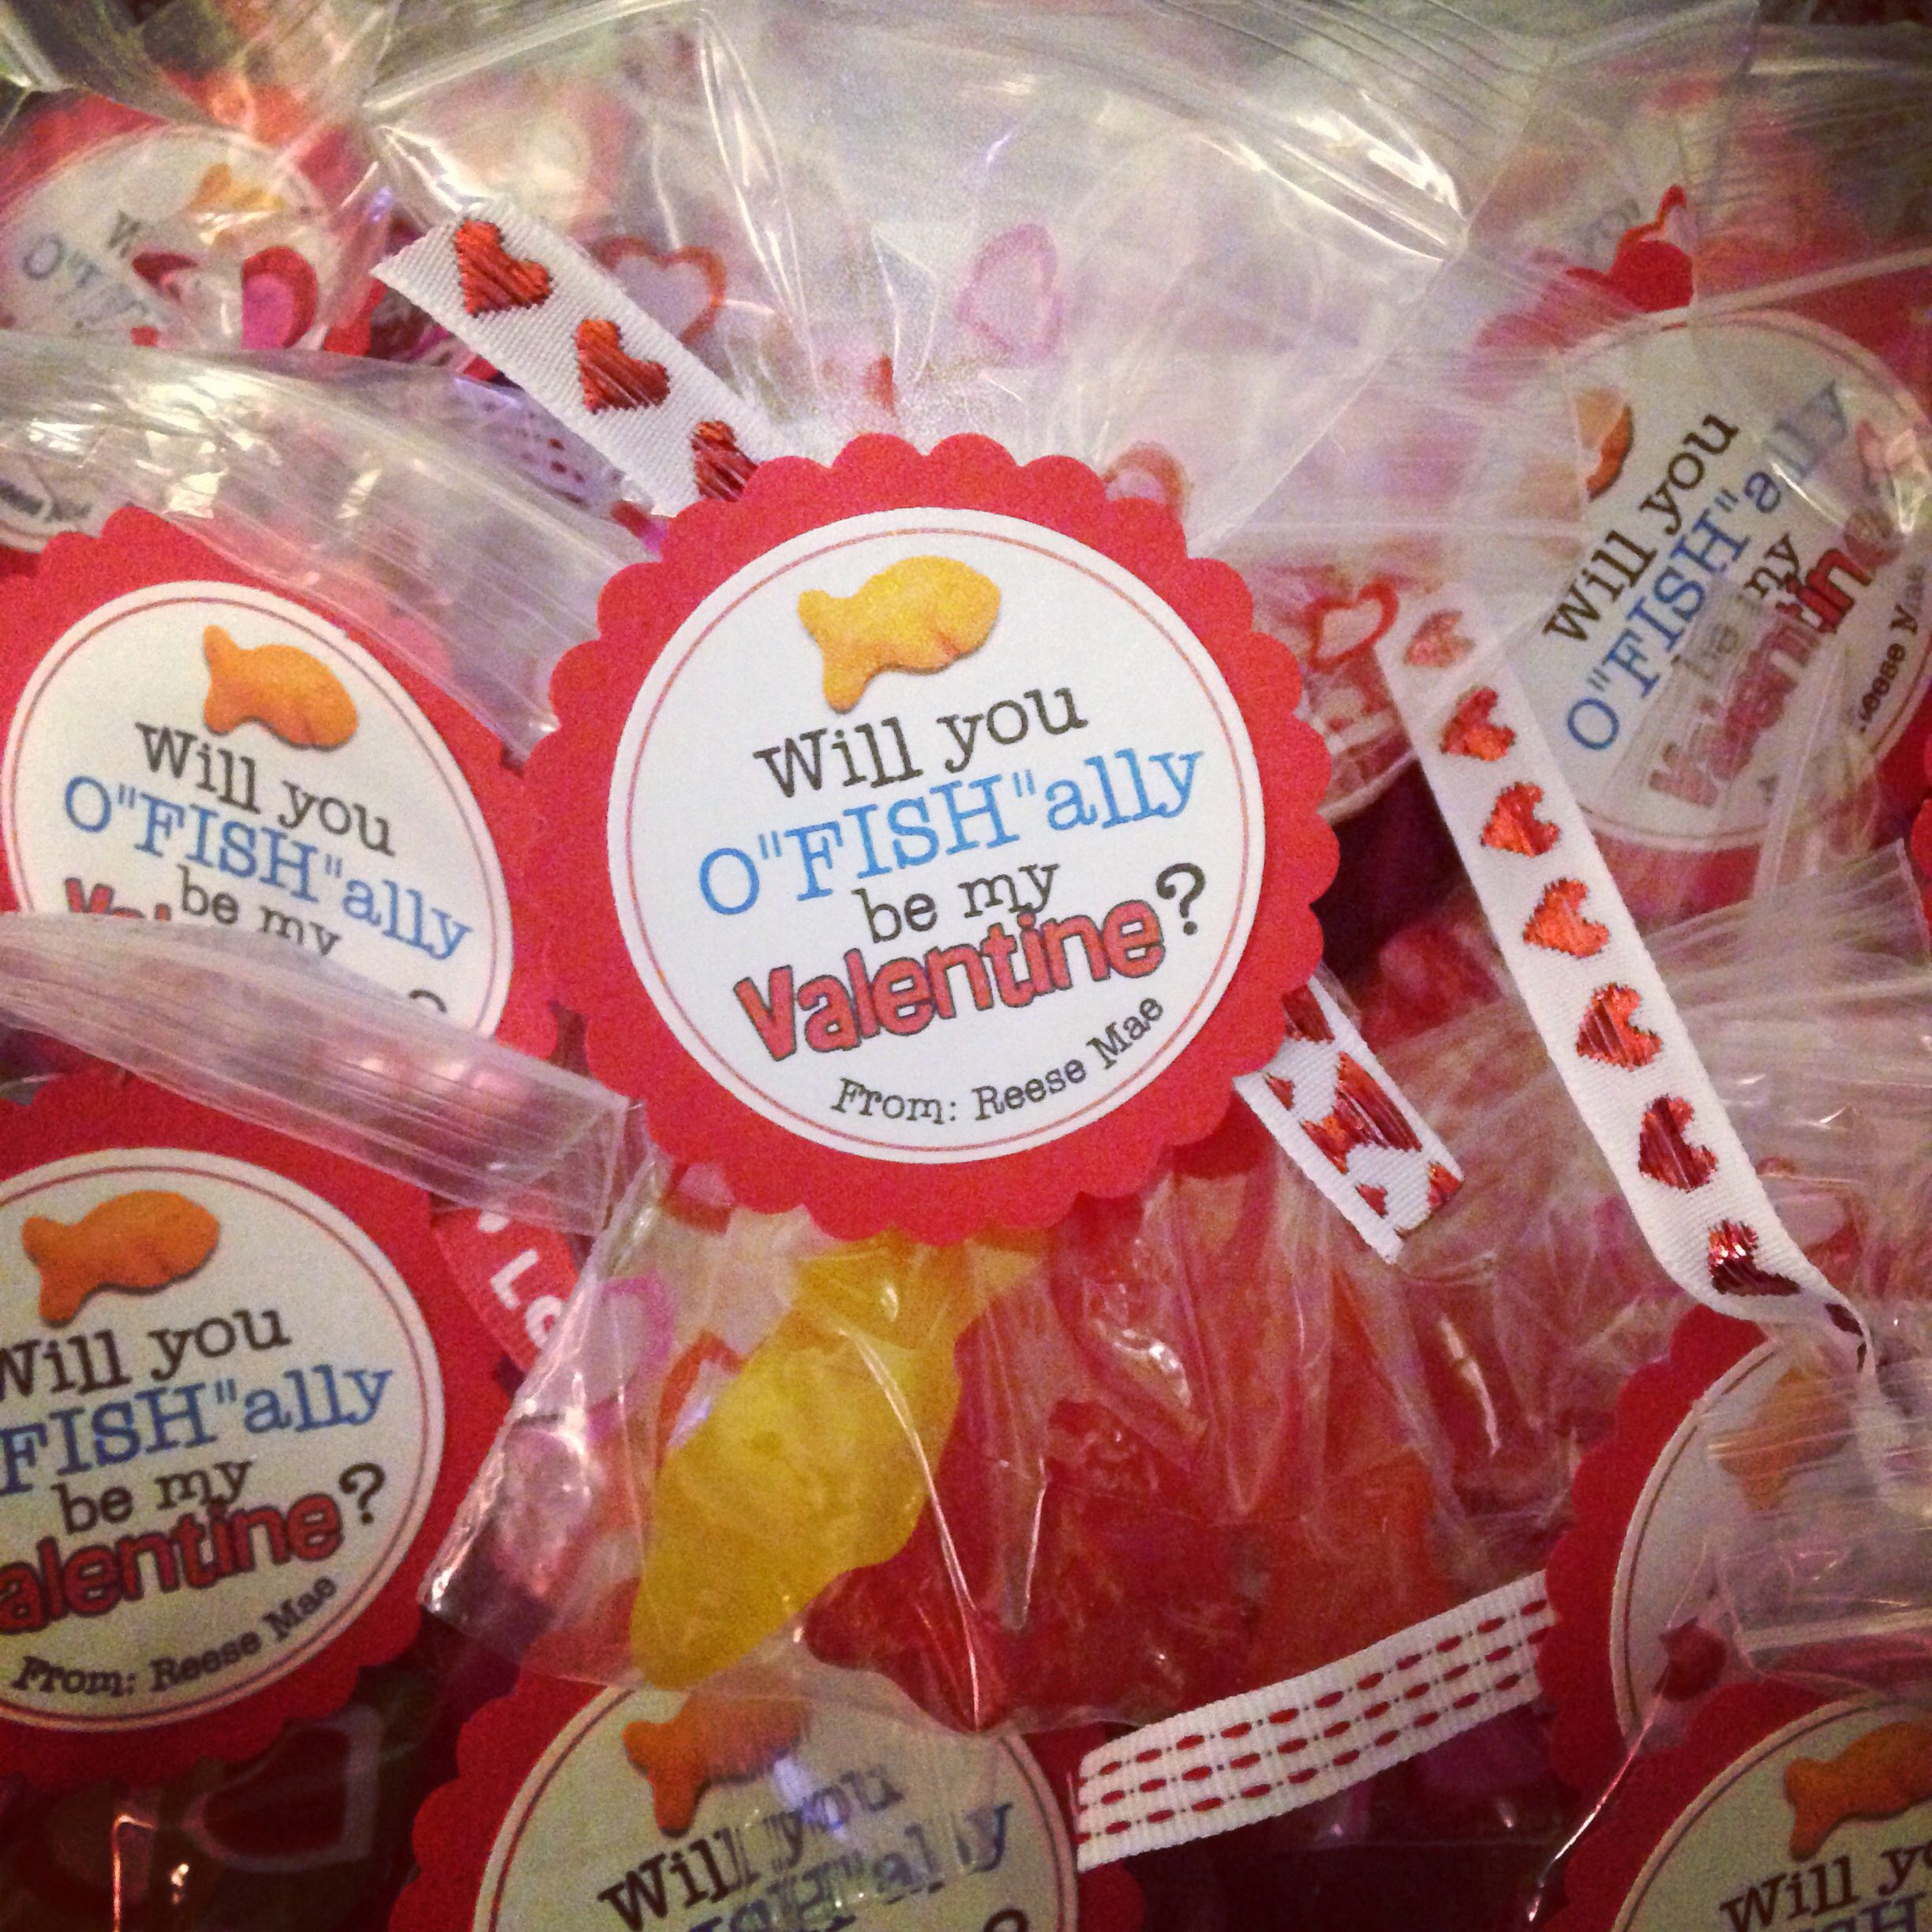 Valentines 2014, multi-color Swedish fish target brand 1$ a bag ...